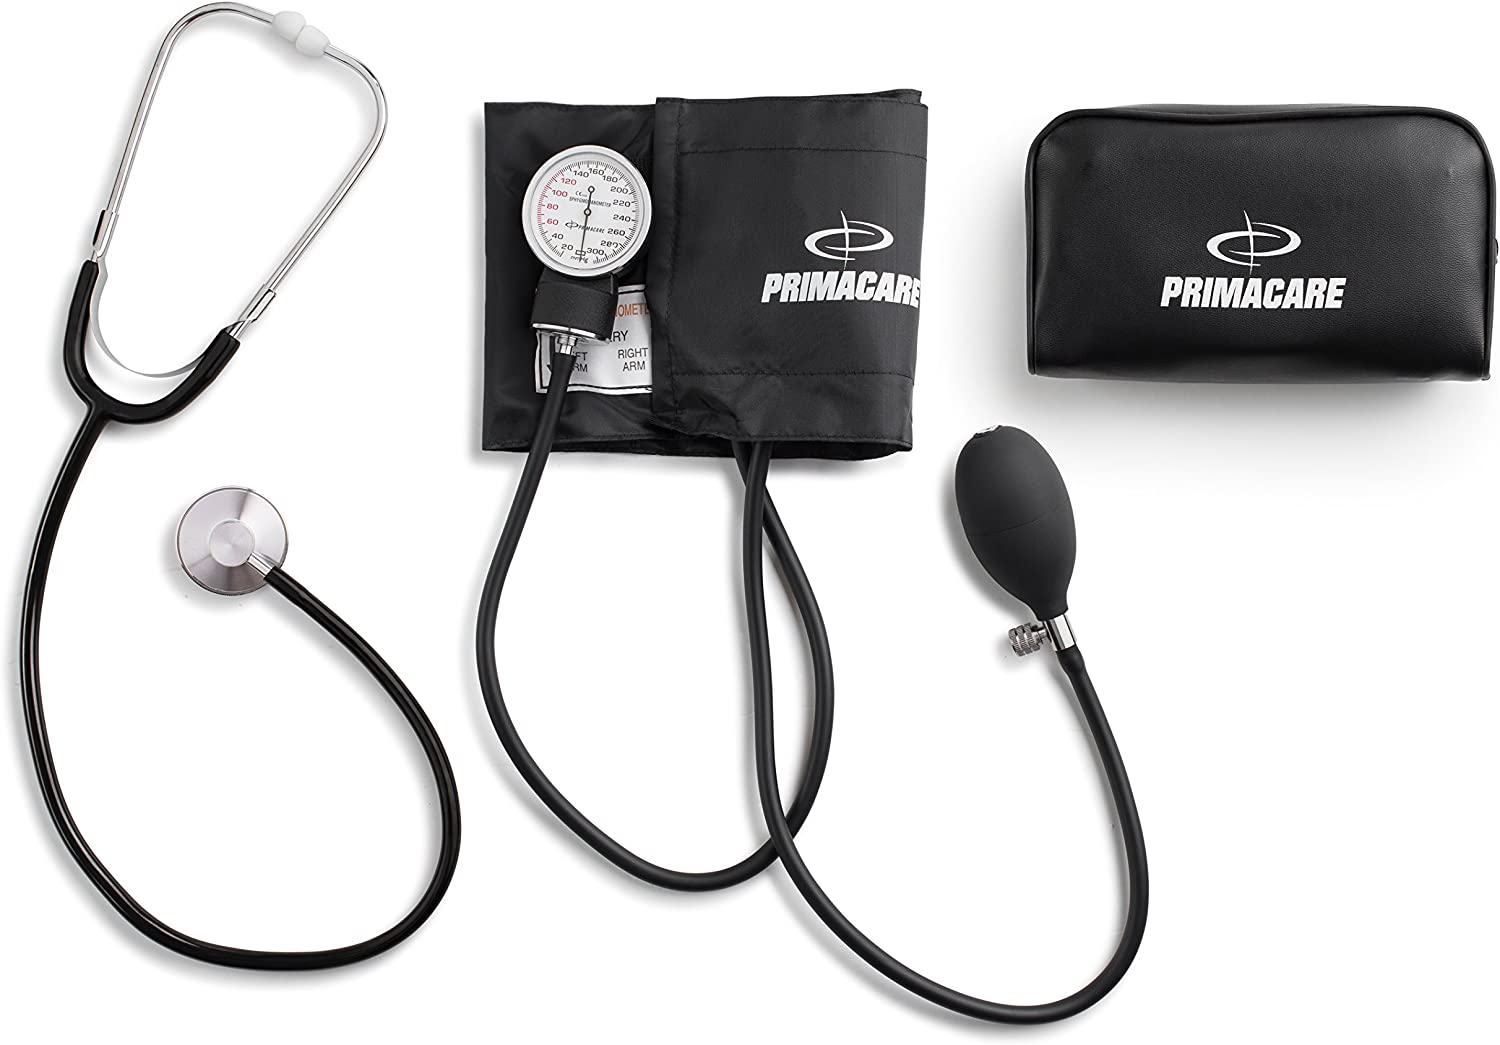 Primacare DS-9195 Classic Series Adult Blood Pressure Kit with D-Ring Cuff